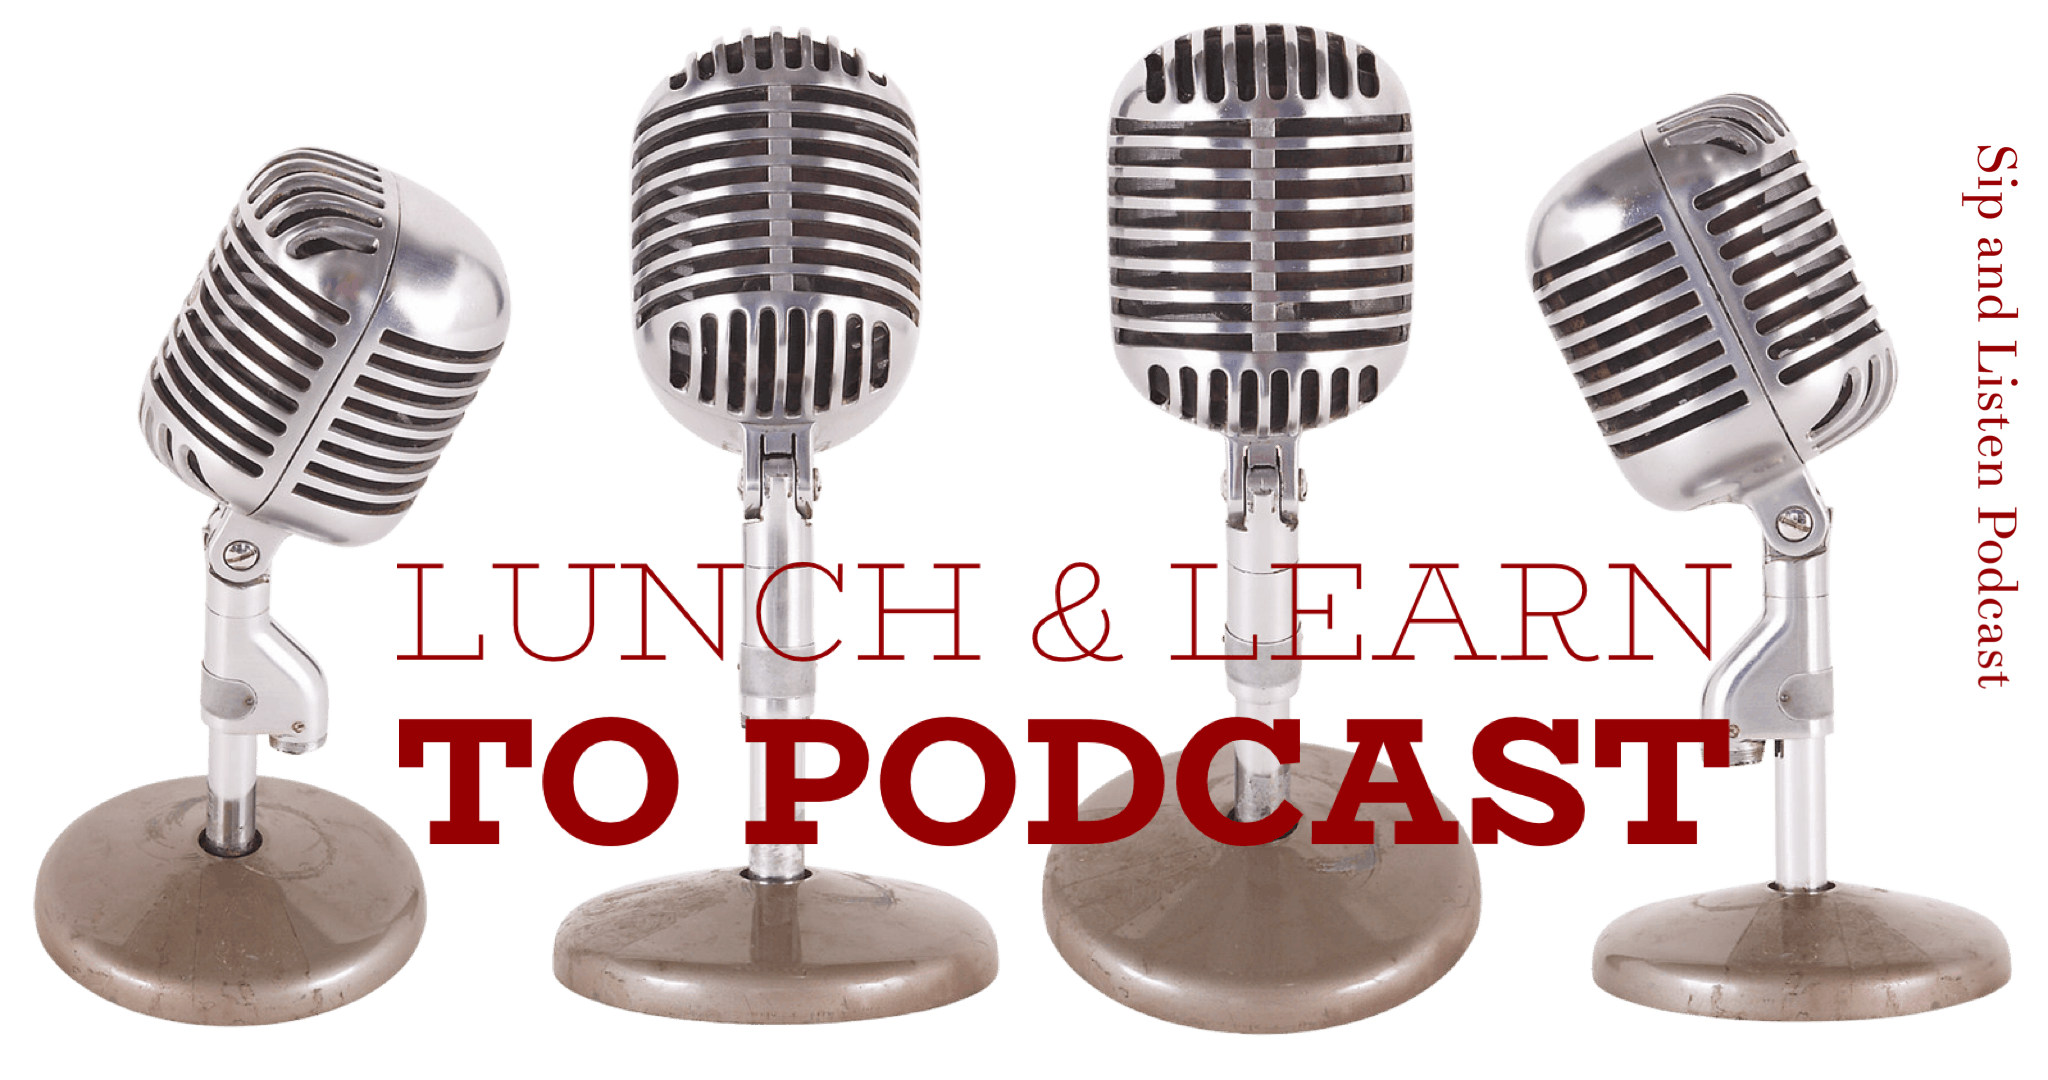 Lunch & Learn to Podcast